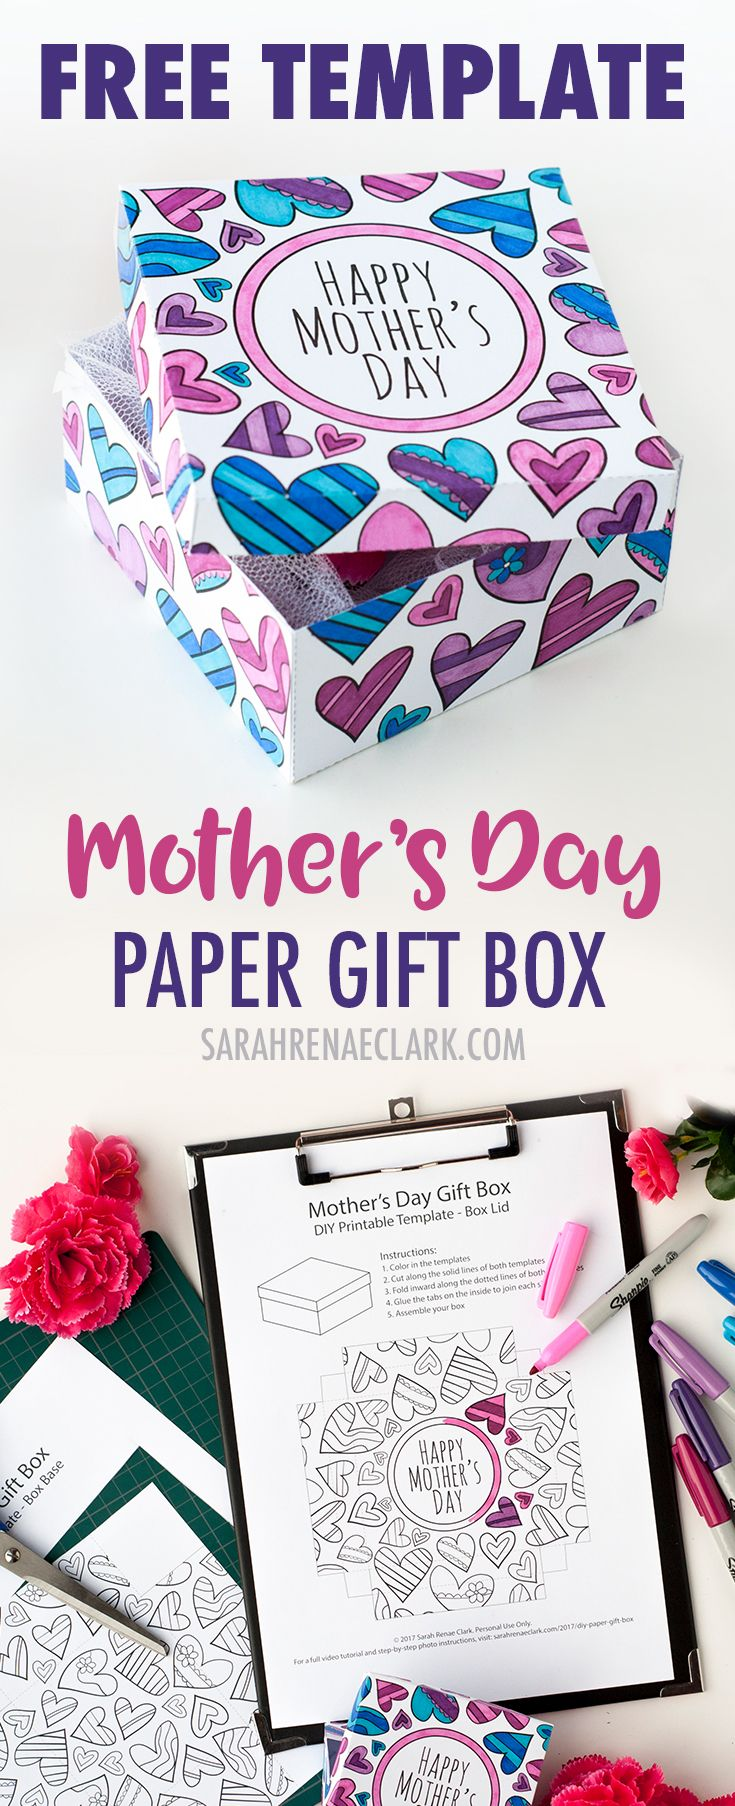 How to make scrapbook using illustration board - How To Make A Paper Gift Box